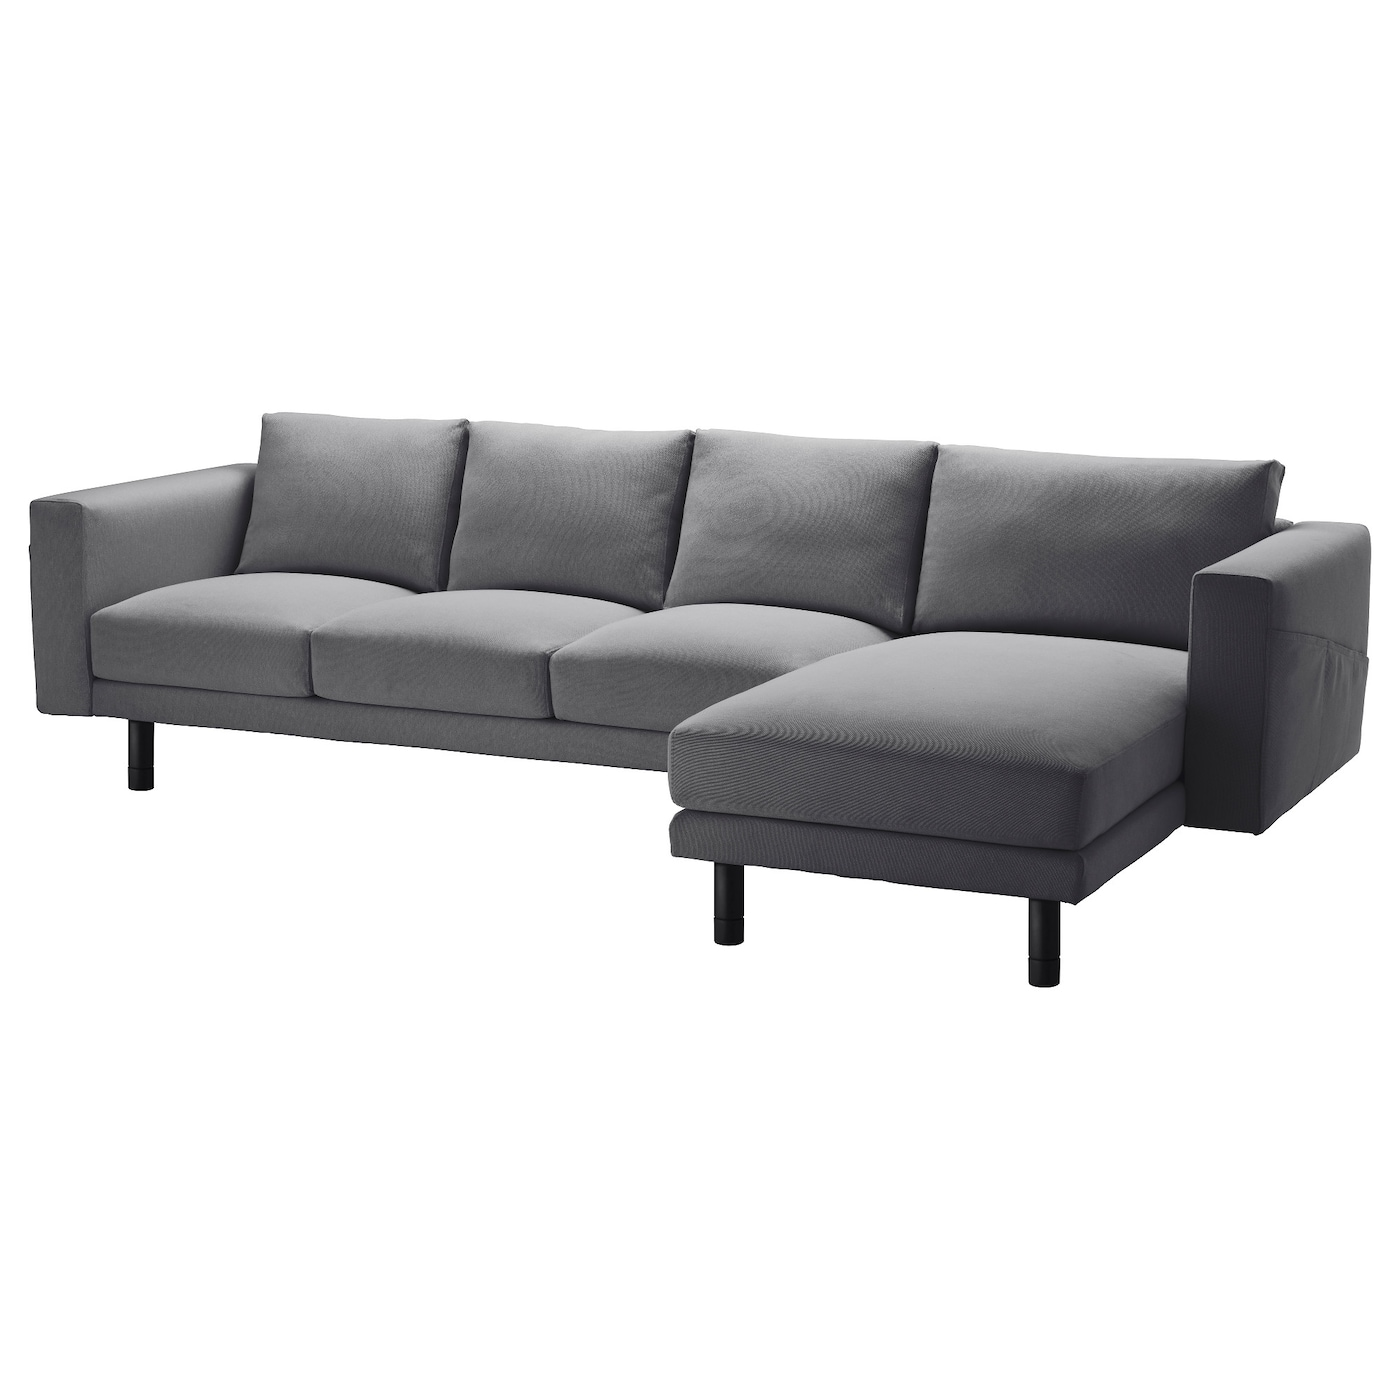 norsborg three seat sofa and chaise longue finnsta dark grey grey ikea. Black Bedroom Furniture Sets. Home Design Ideas